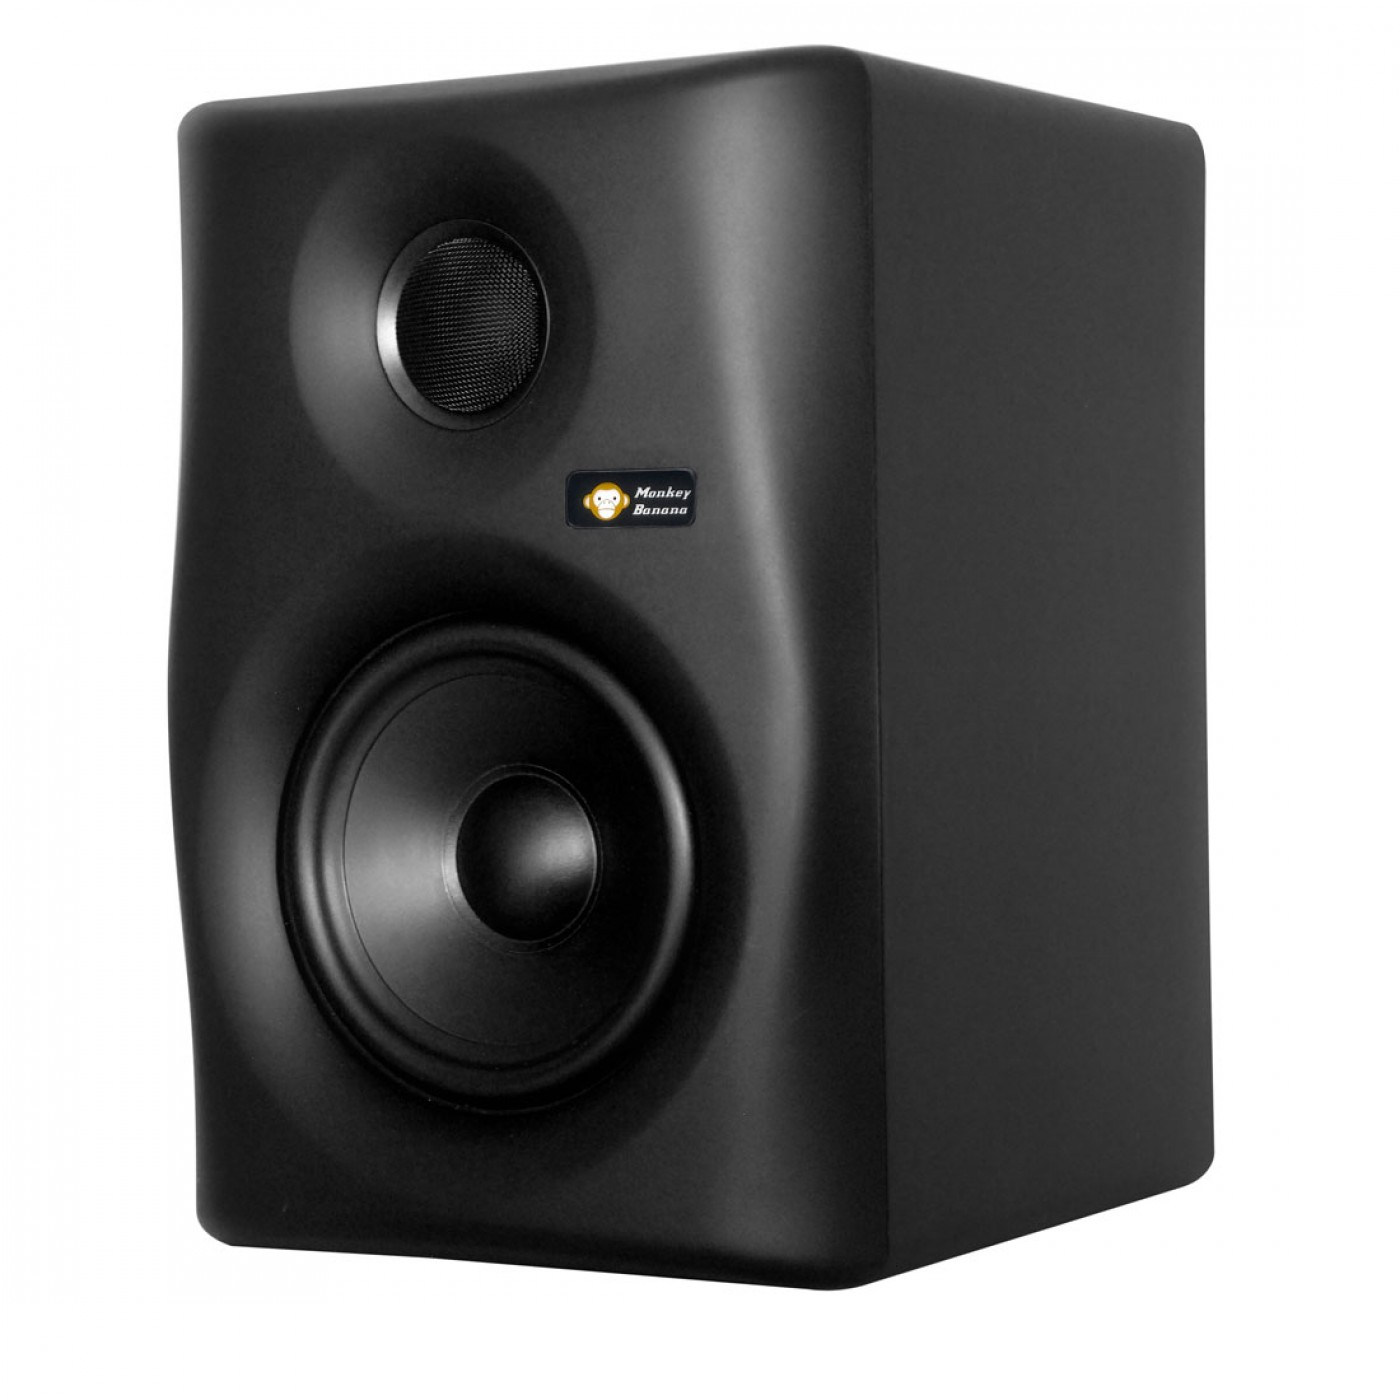 Monkey Banana GIBBON 5 Black | Rage Audio